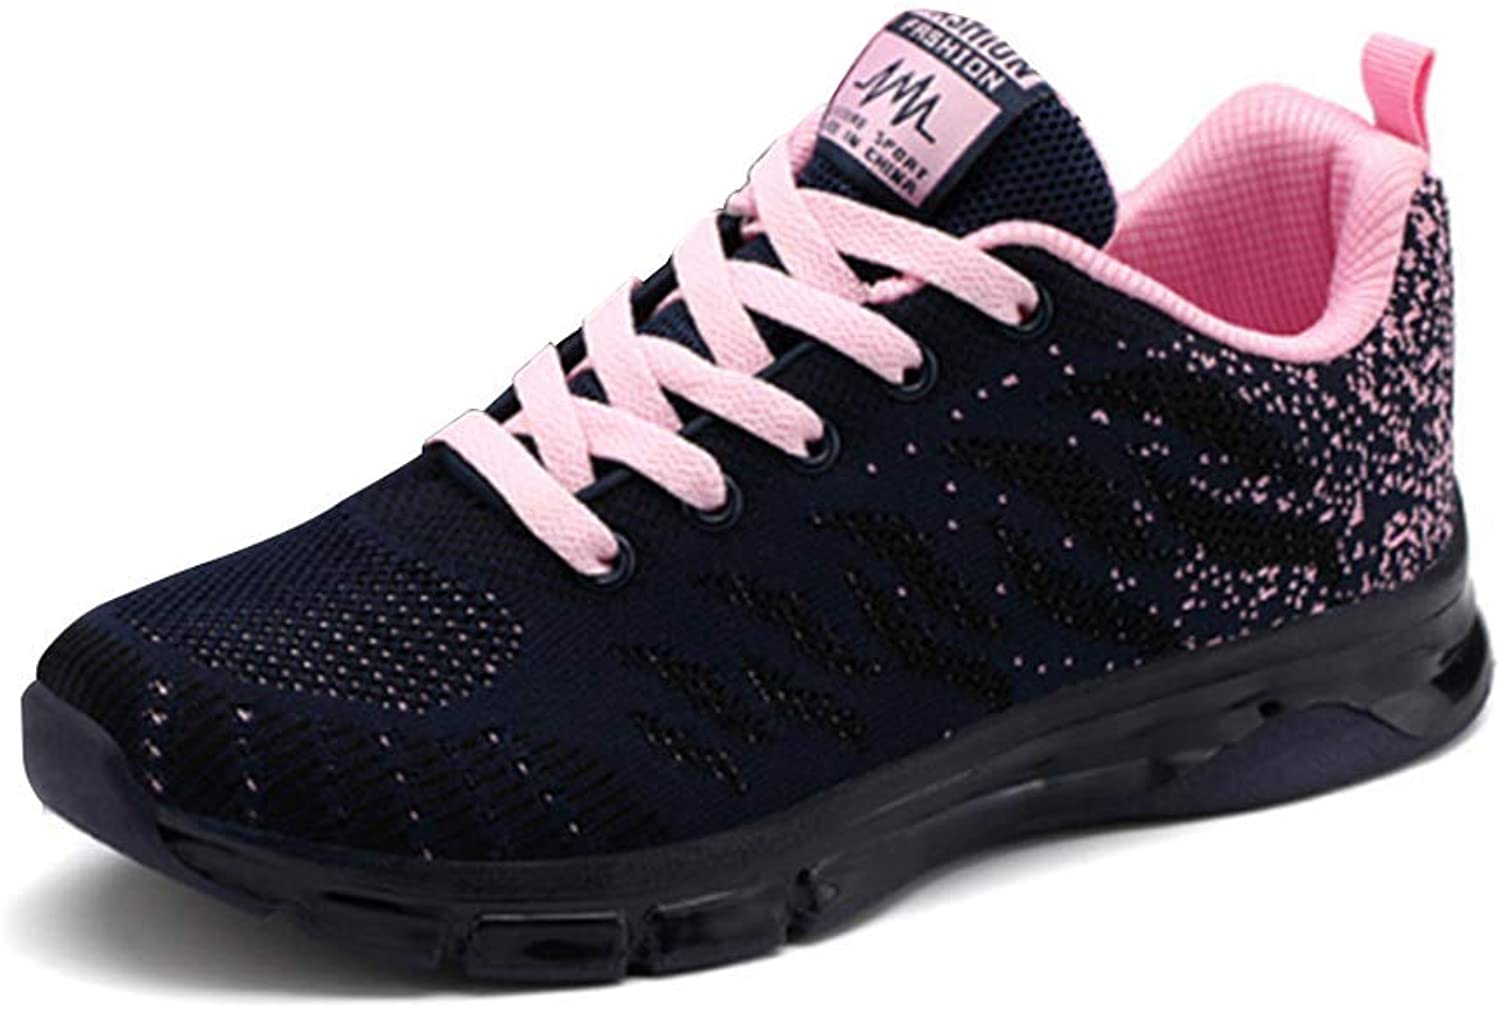 Fashion Flying Weaving Trainer, Air Cushion Mesh Breathable Fitness Sports shoes, Wear Resistant Non-slip Safety Running shoes, Student, Office, Park, Walking,Pink,40